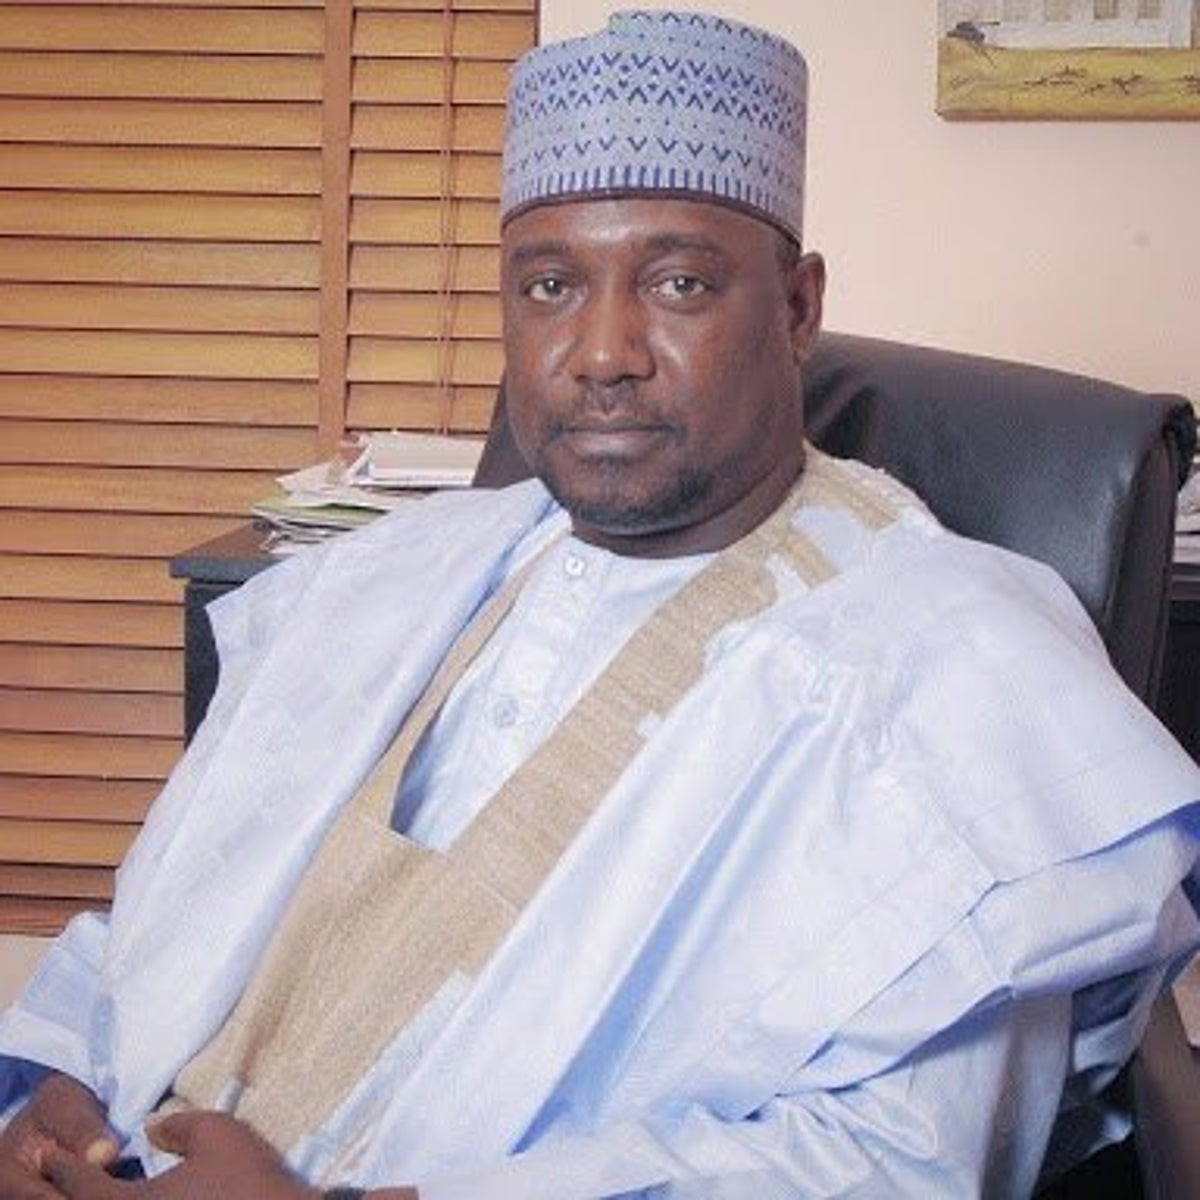 Kagara abduction - Some of these bandits are tired and need to be taken care of - Niger State Governor, Abubakar Bello